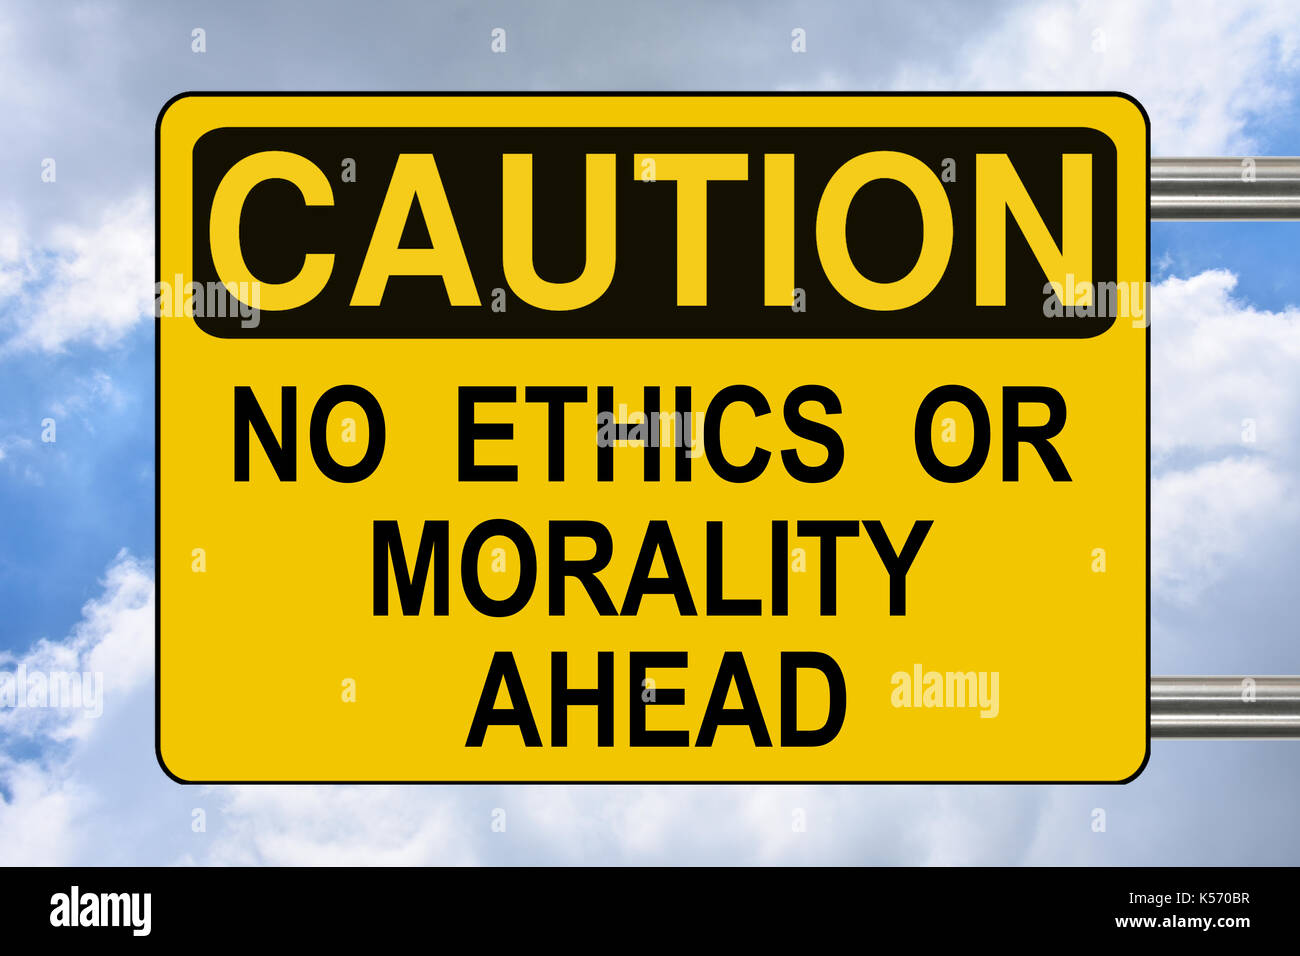 No ethics or morality ahead, yellow caution road sign Stock Photo